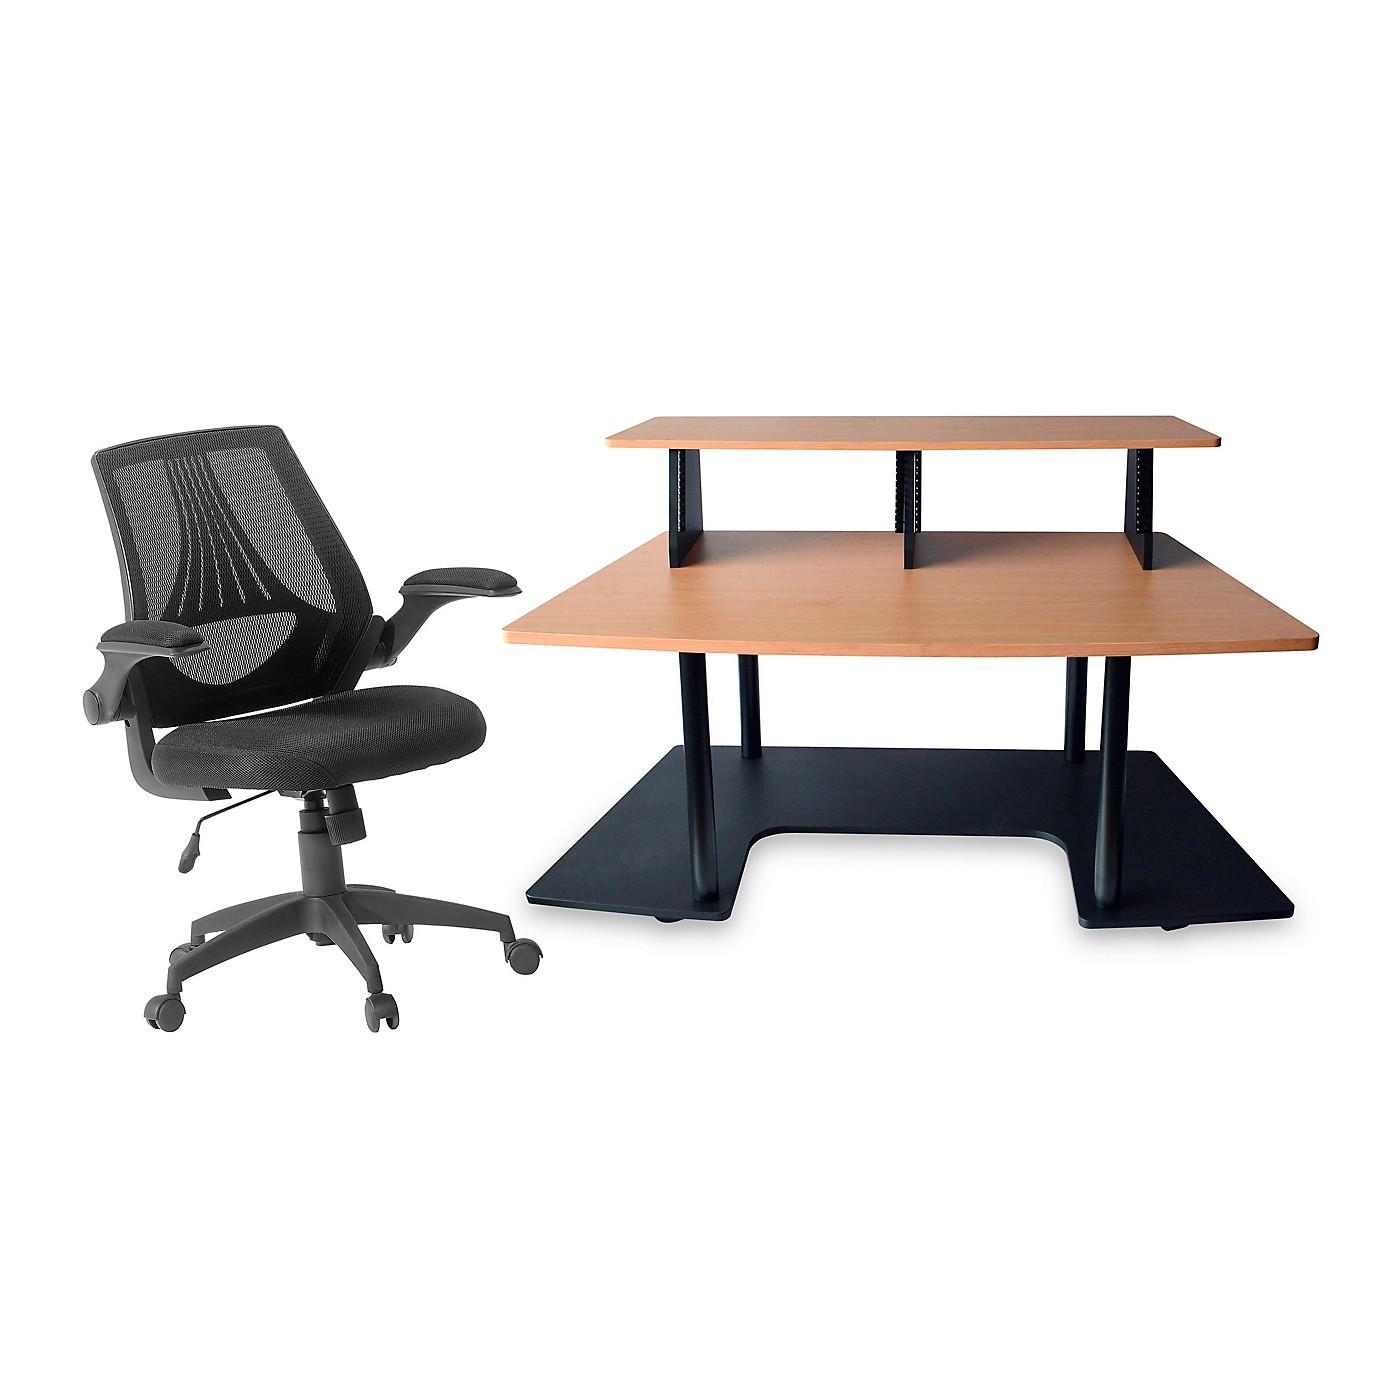 Studio RTA Studio RTA Creation Station Maple and Mesh Managers Office Chair Bundle thumbnail